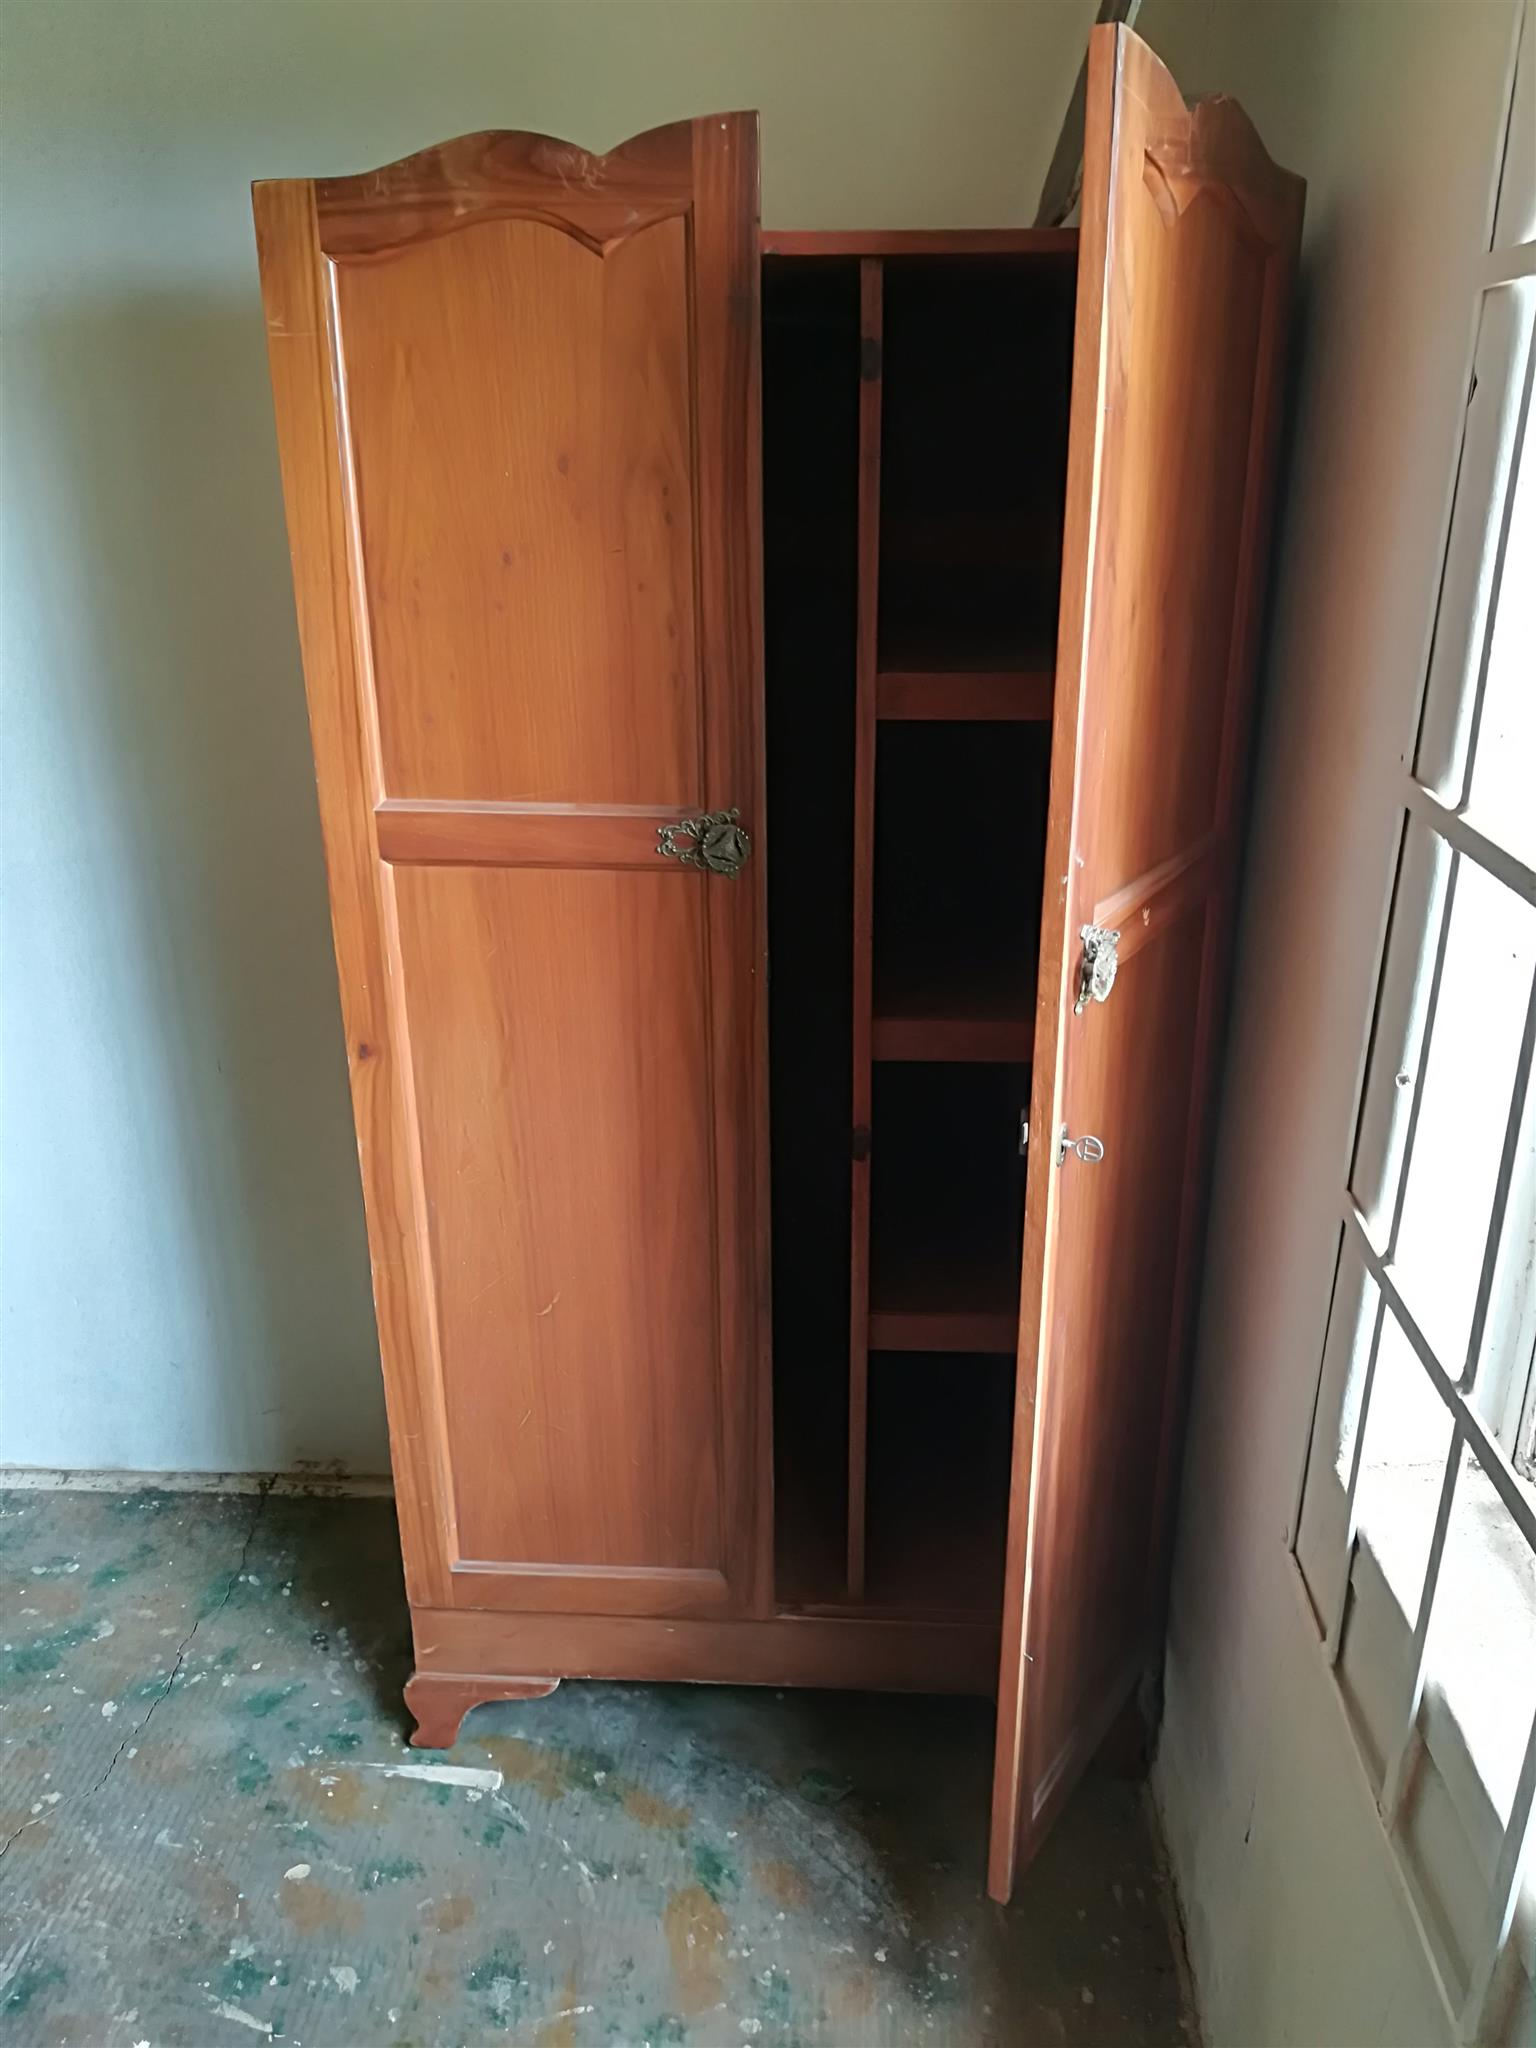 wondrous makeover shaped wardrobes with interesting cupboards for points design antique bedroom cheap sale delightful white inner extraordinary awesome ideas double wardrobe alcove home horrible latest